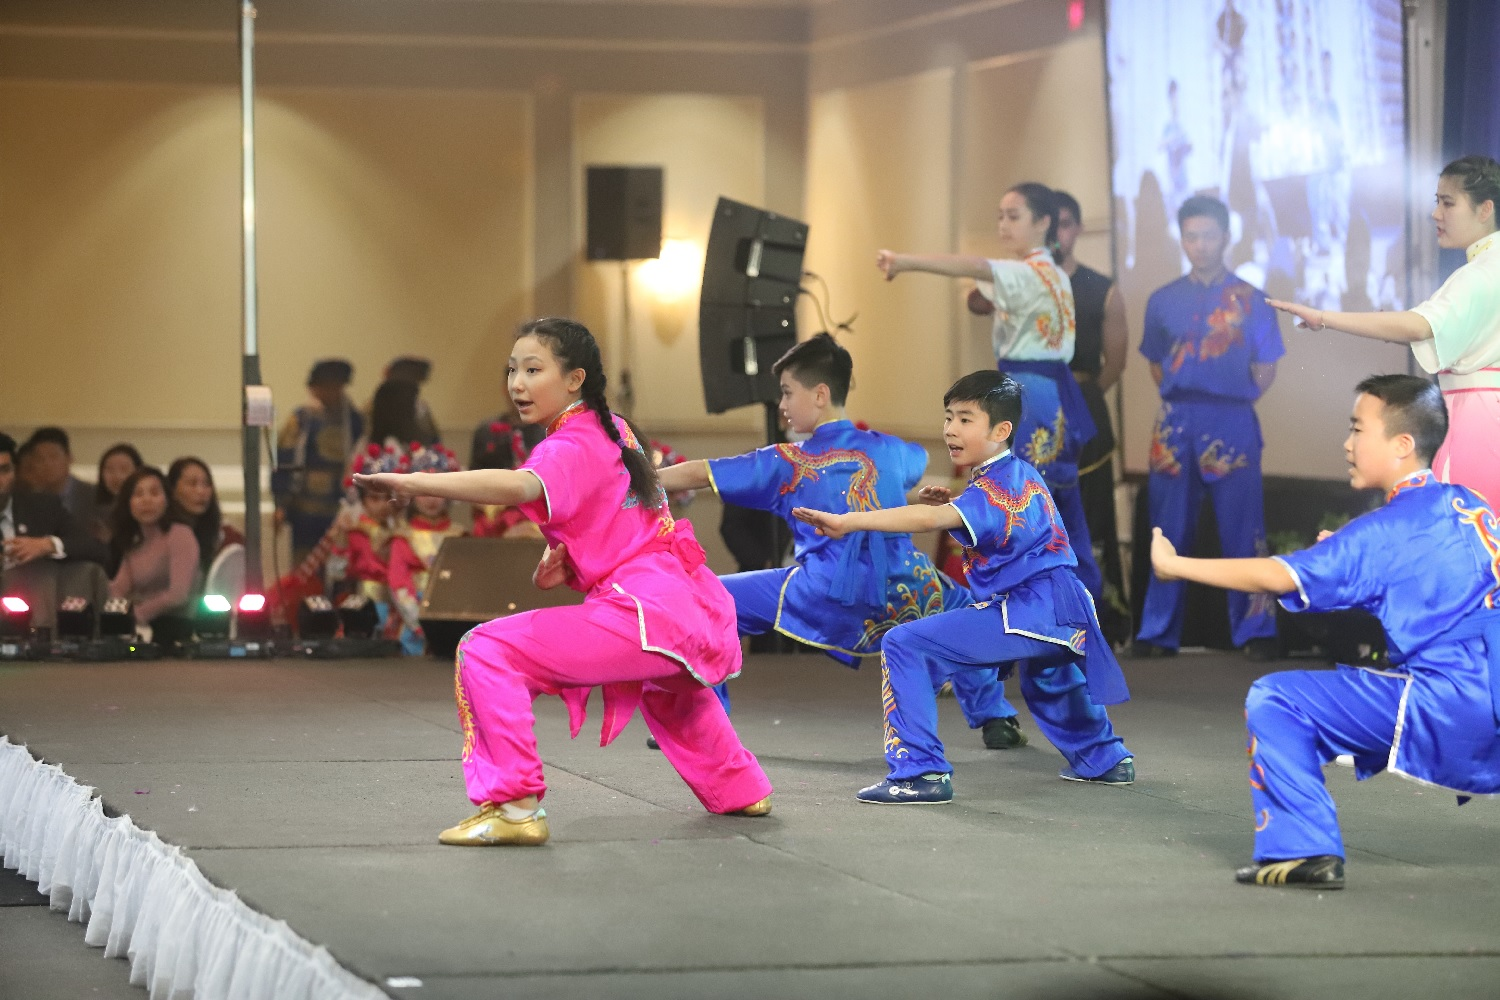 wayland-li-wushu-chinese-new-year-henan-association-canada-2019-12.jpg